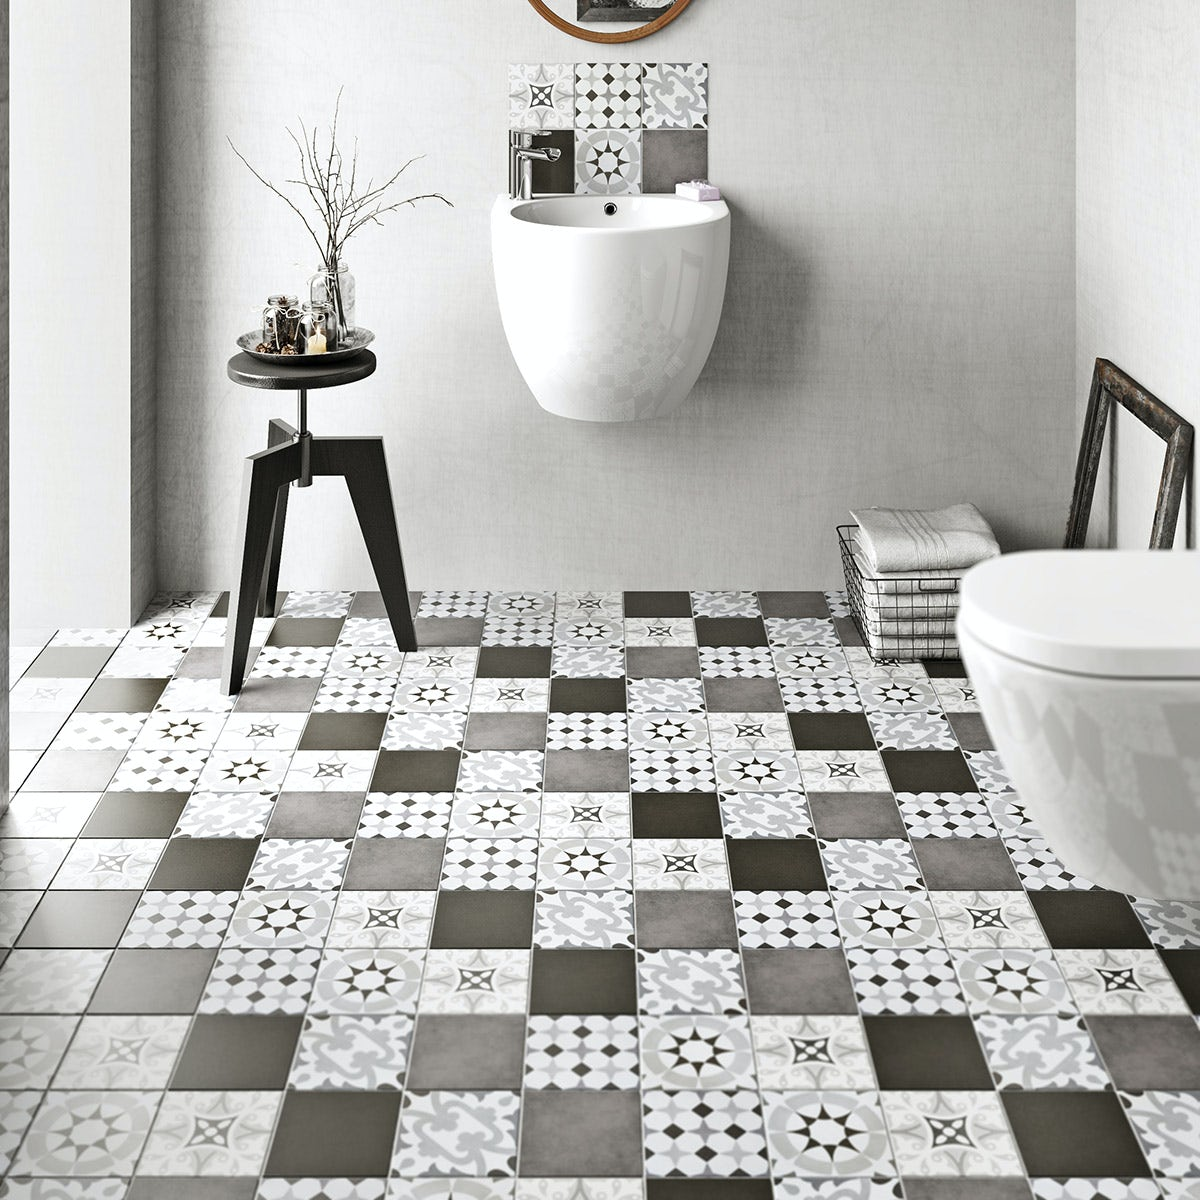 Laura Ashley Tiles >> British Ceramic Tile Patchwork pattern grey matt tile